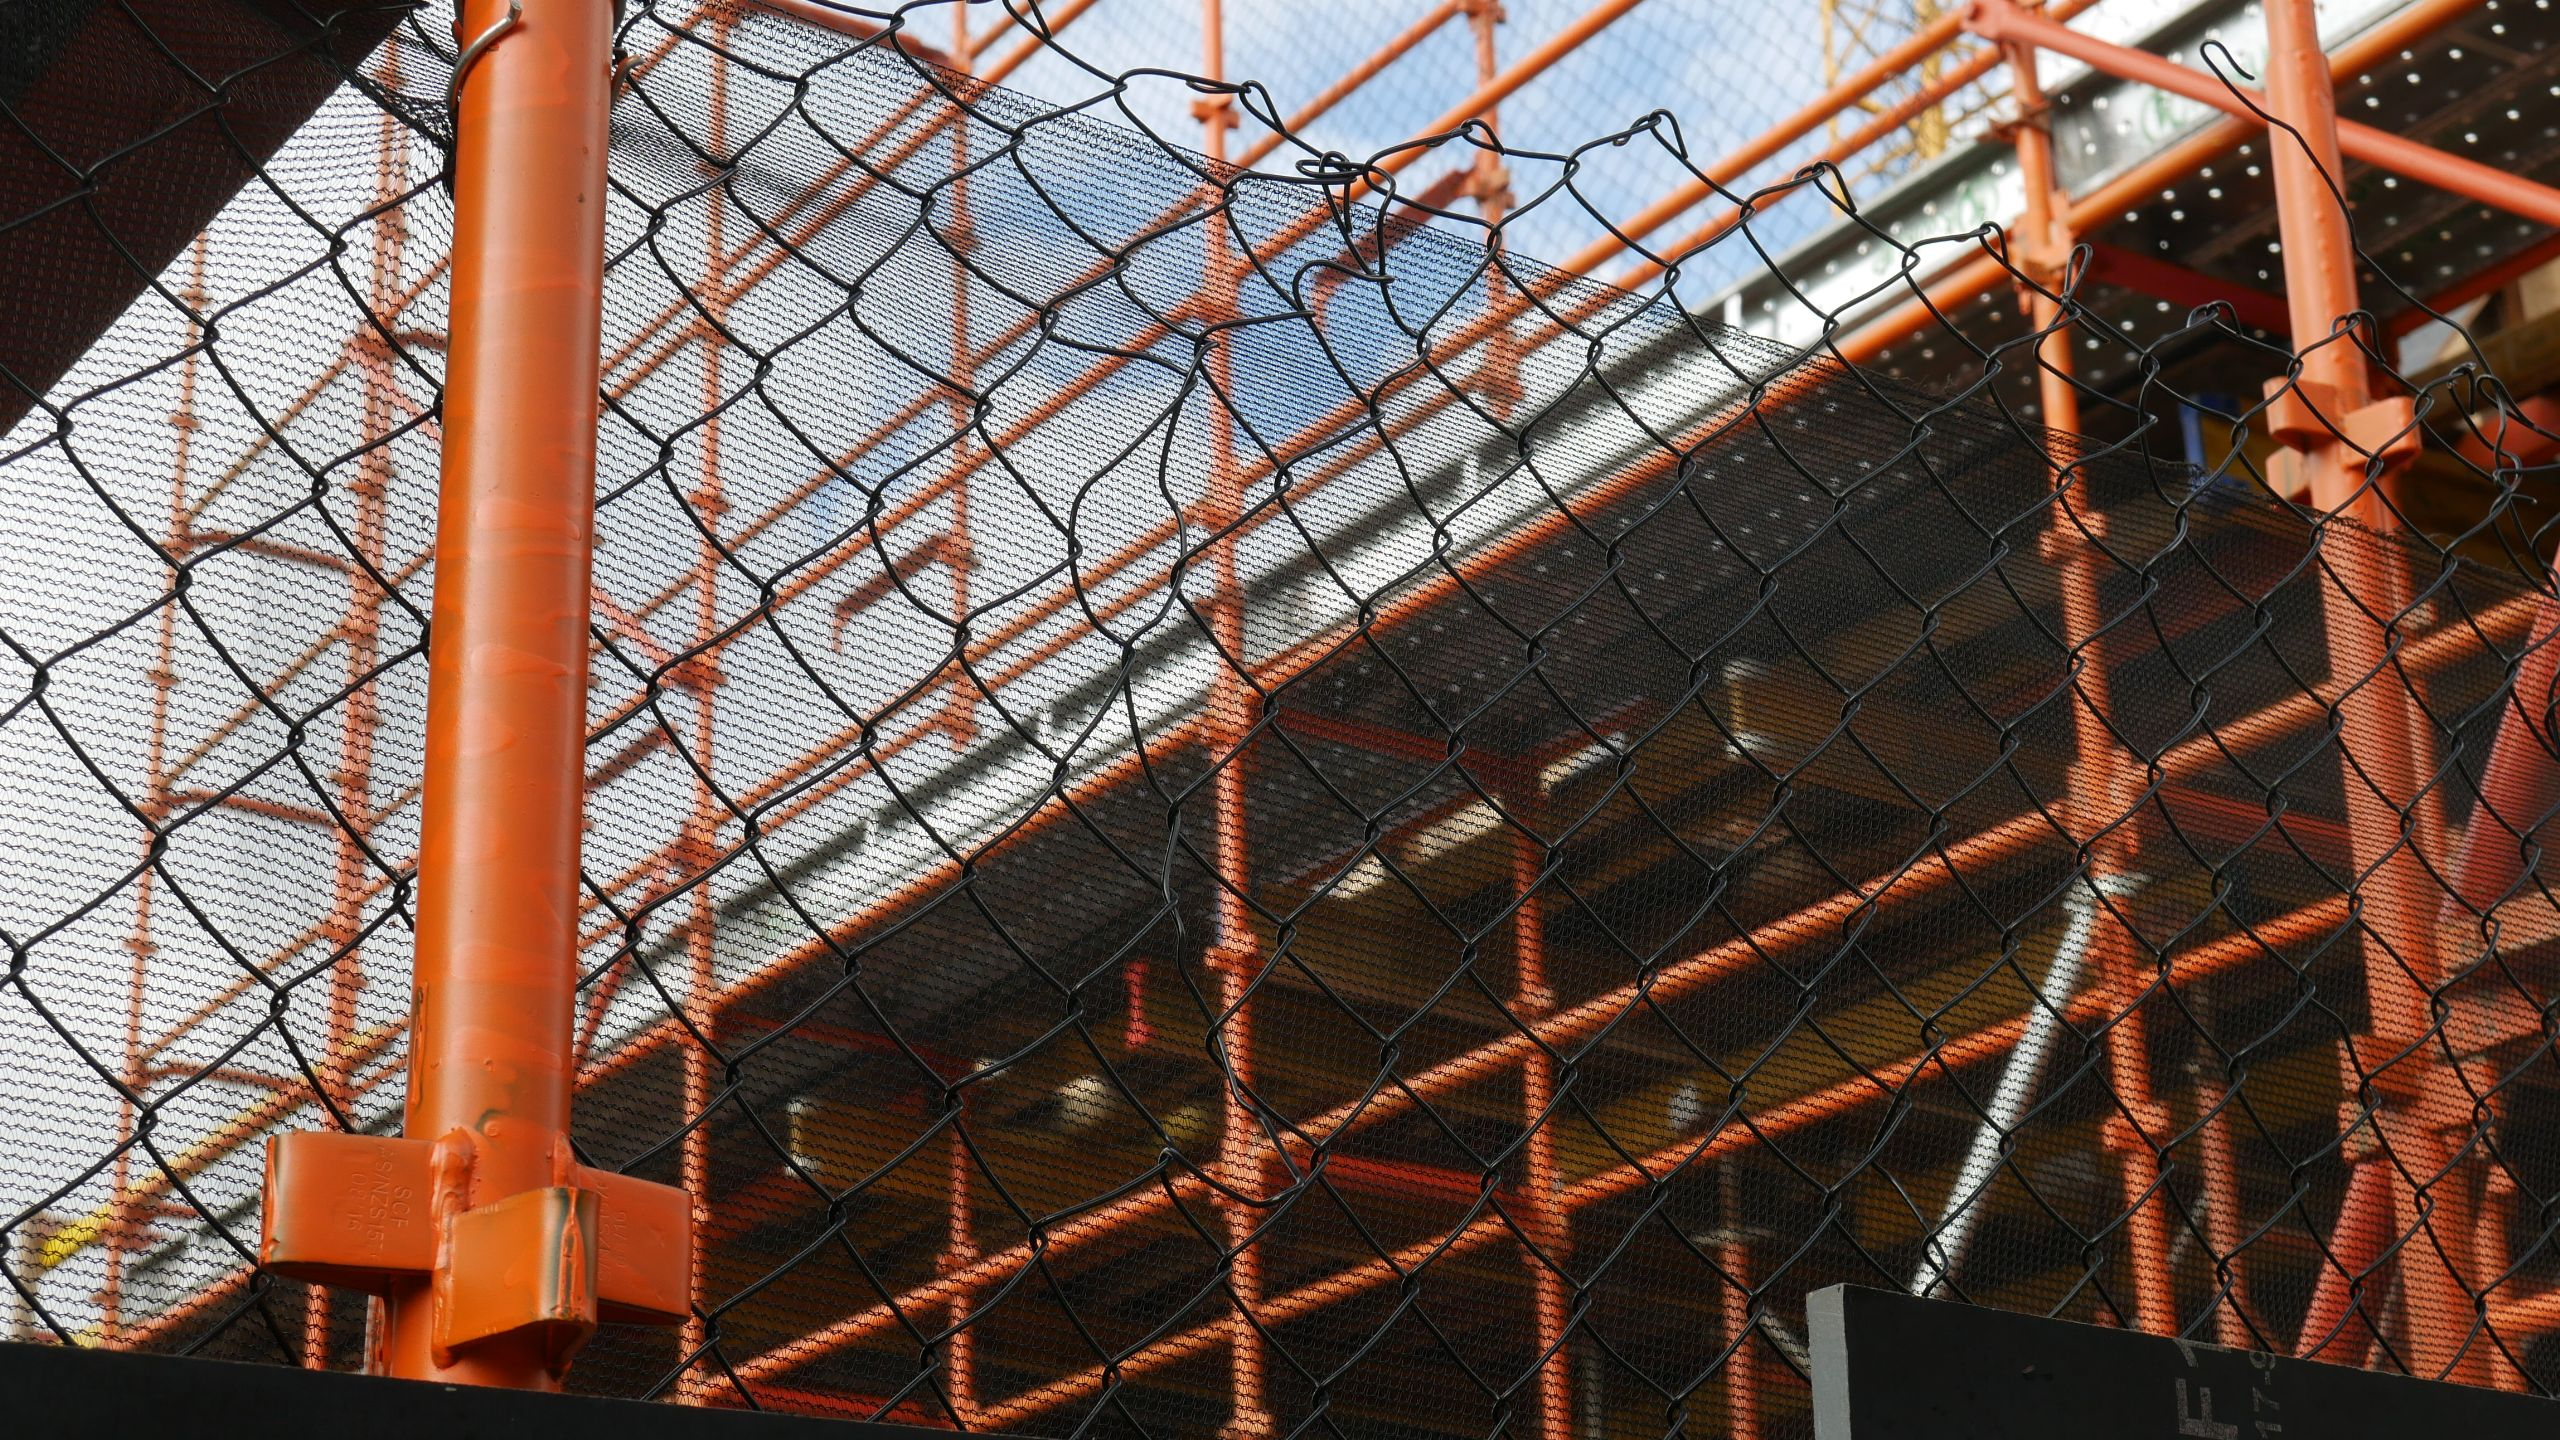 : In the foreground of the image there is black chain wire fence mesh with an orange standard on the left side of the image.  In the background the scaffolding runs diagonally back from the right of the image.  All the scaffolding is orange, the standards, the ledgers and the transoms.  In the top left corner, the sky is visible with lots of cloud cover.